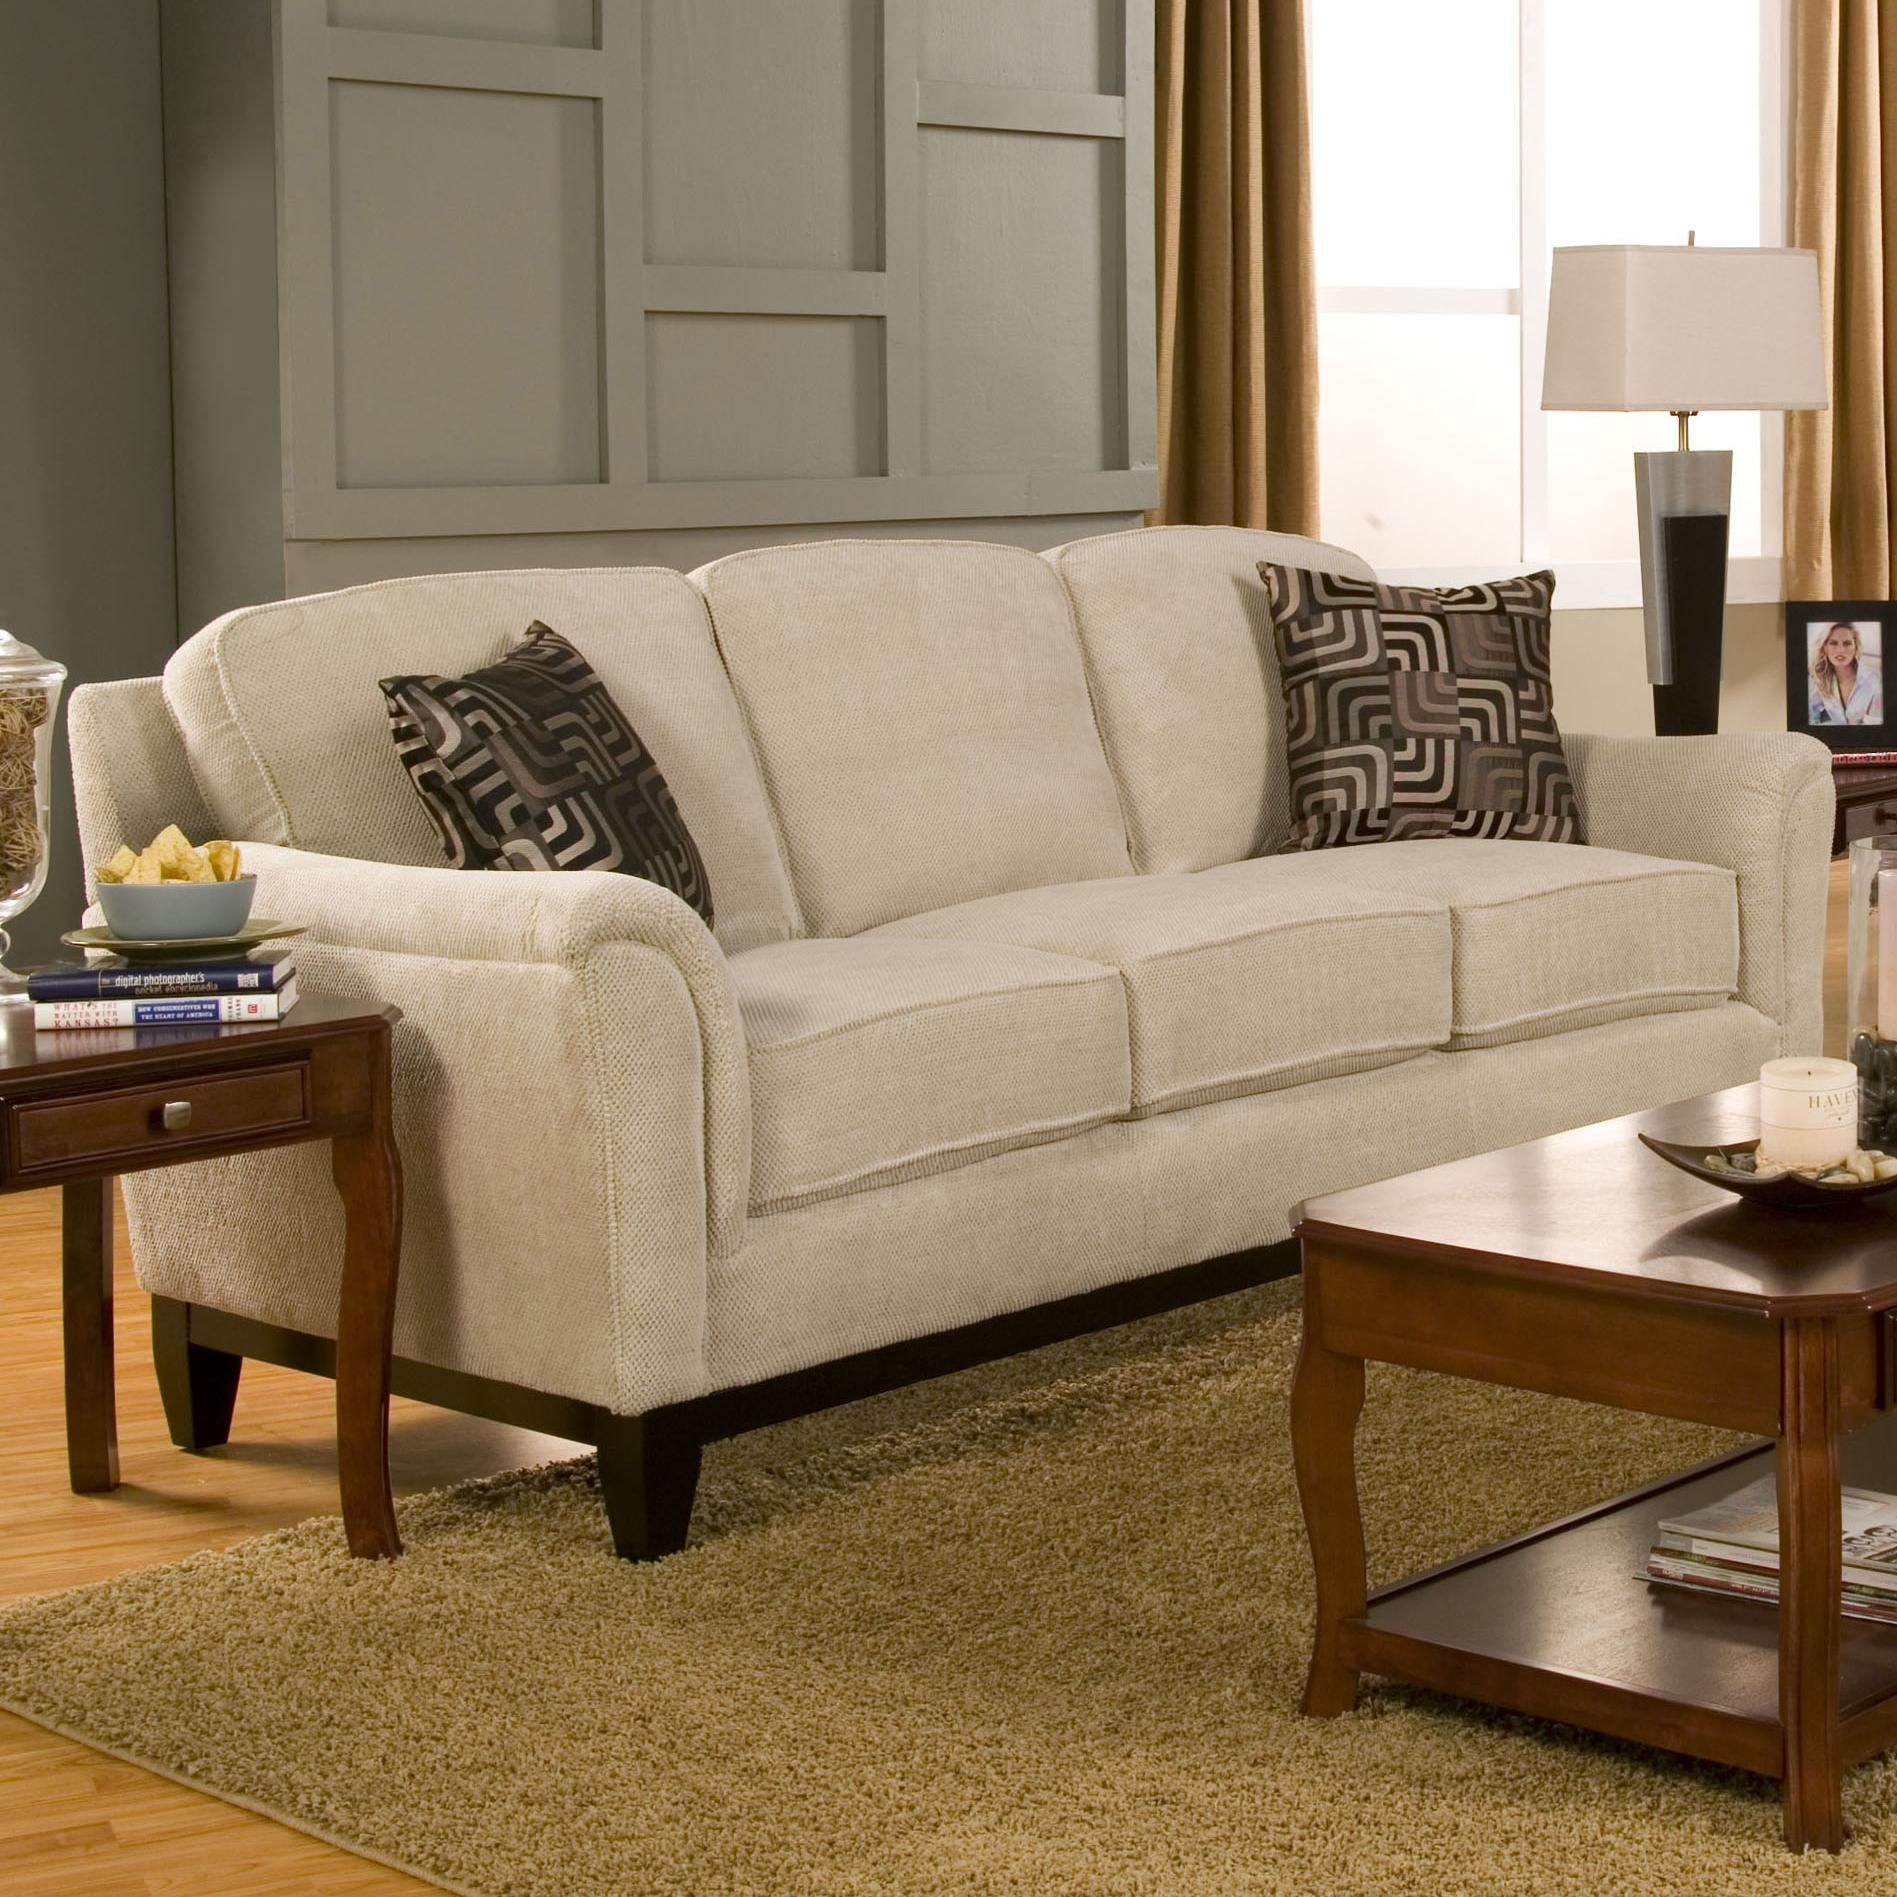 Carver Sofa With Exposed Wood Base By Coaster Rooms Furniture